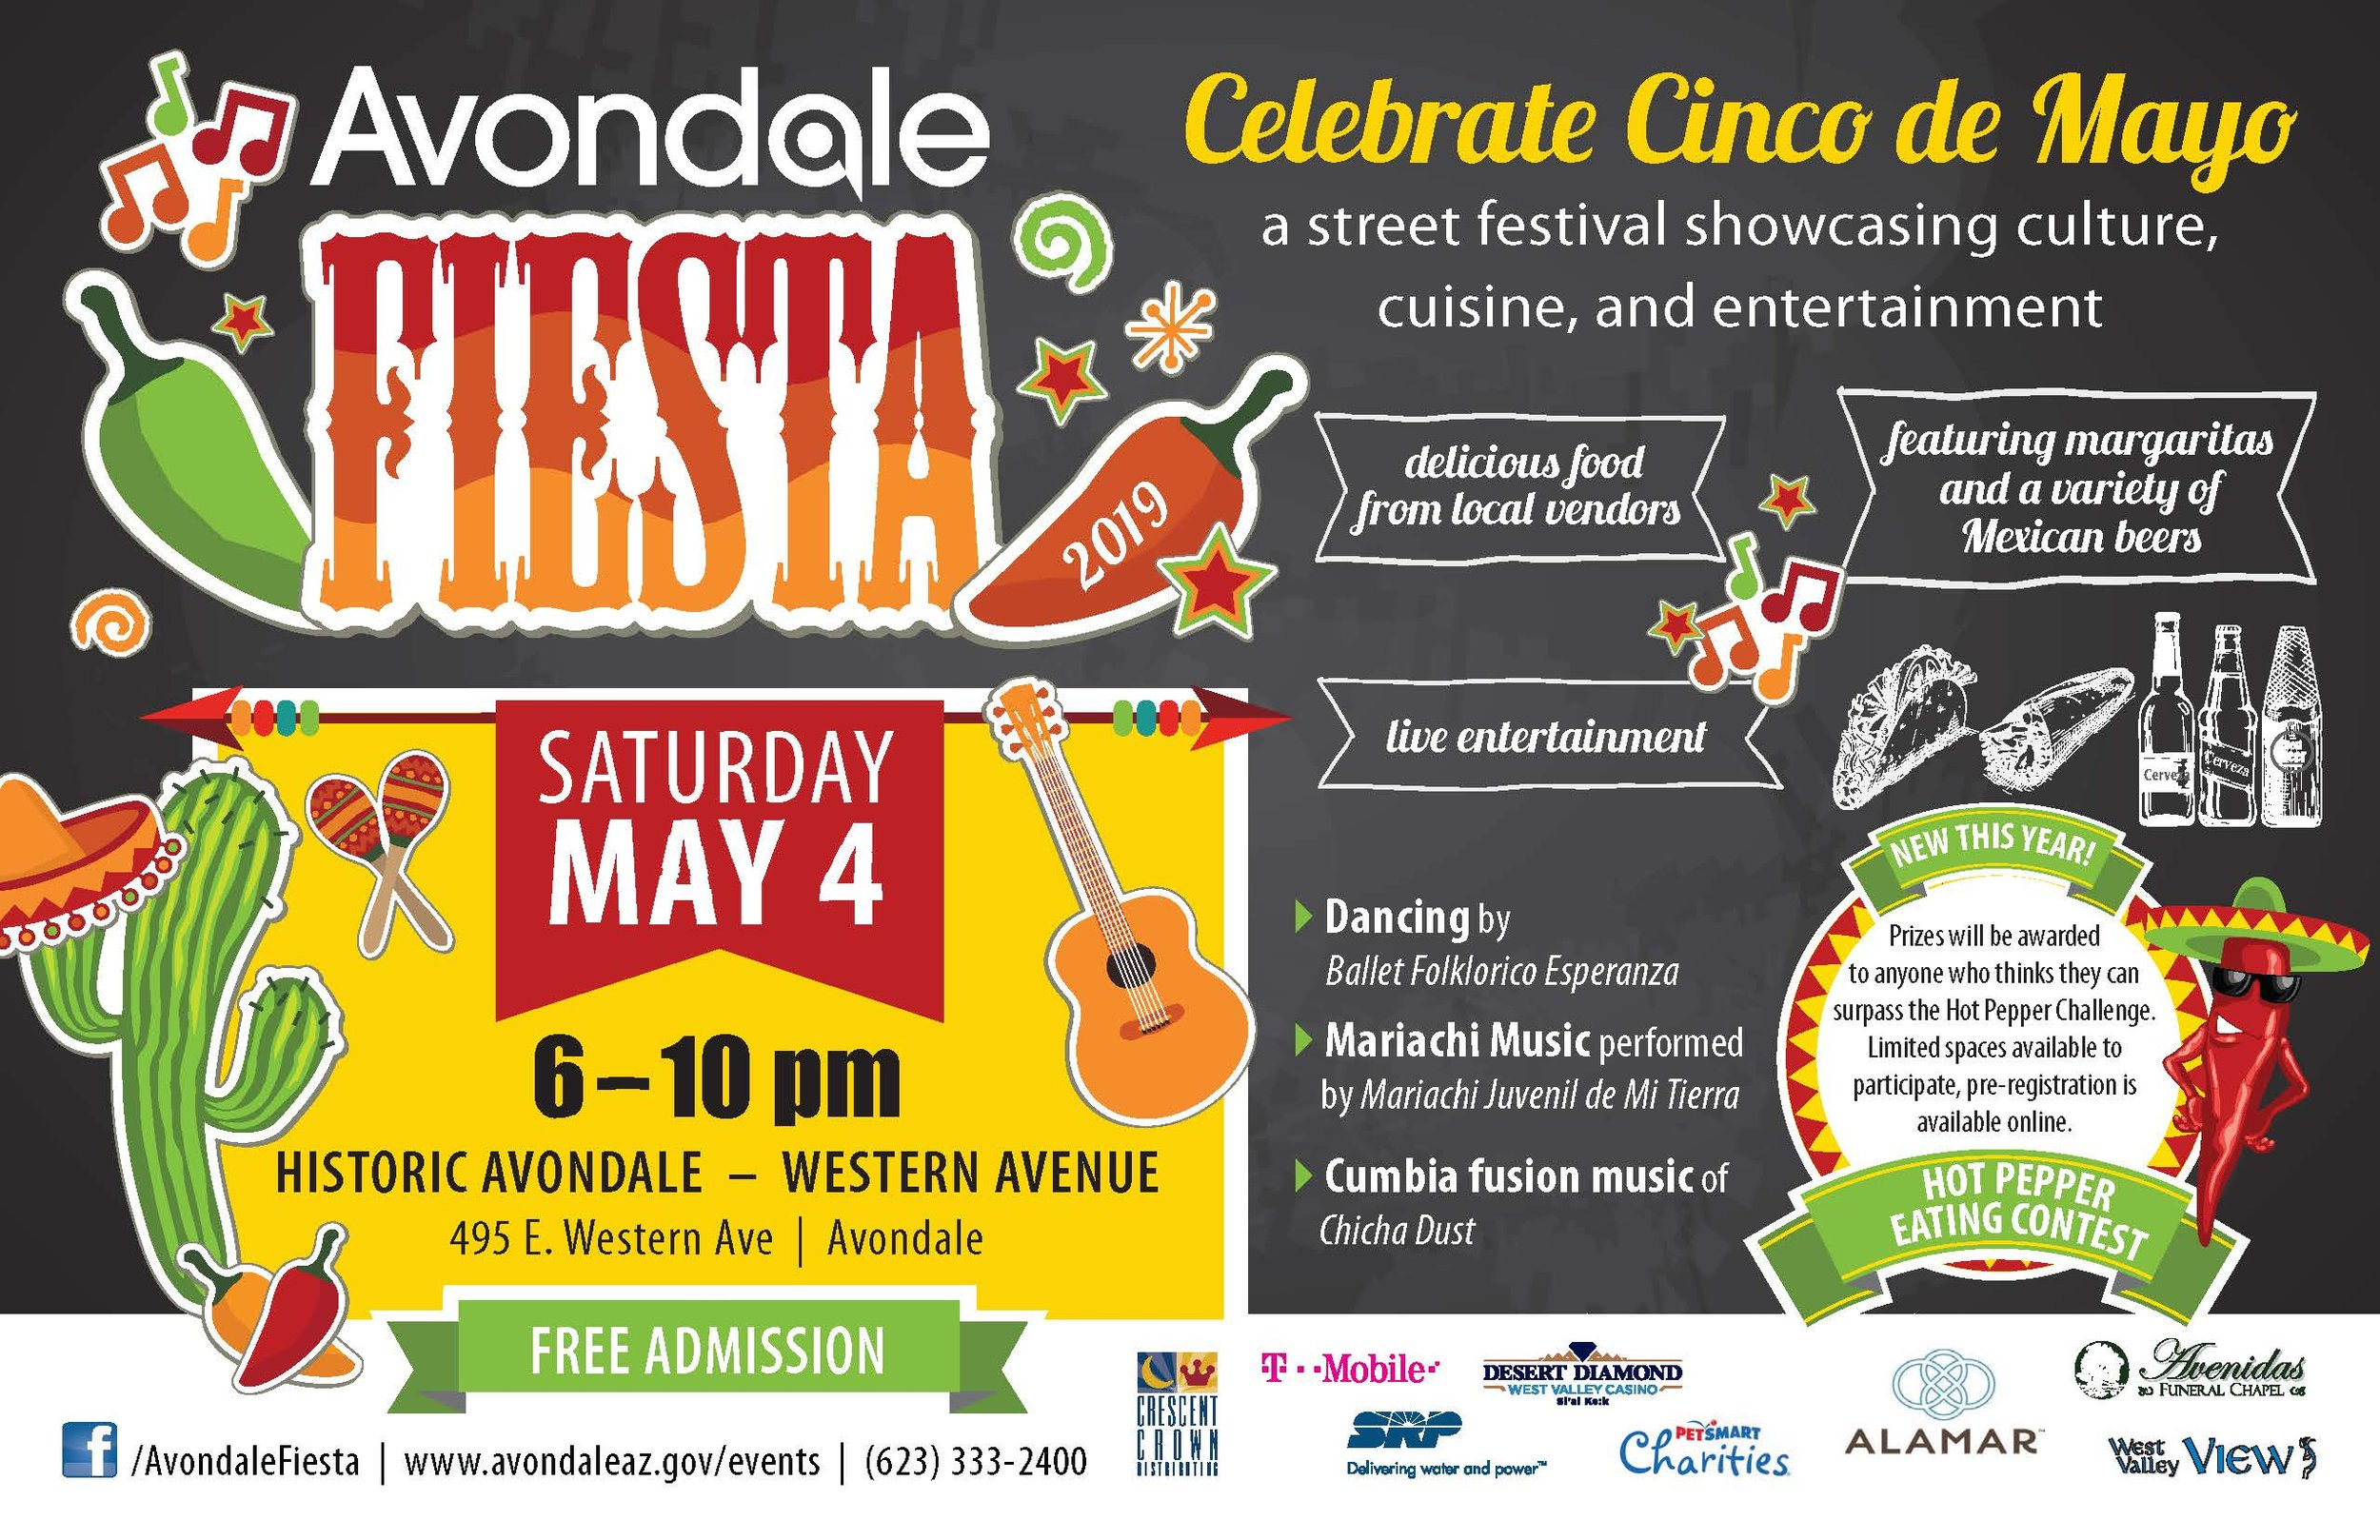 Celebrate Cinco de Mayo at Avondale Fiesta, May 4 - Join us for a Cinco de Mayo-inspired street festival at Avondale Fiesta on Saturday, May 4, 2019 in Historic Avondale.Avondale Fiesta is a free event that showcases culture, cuisine and entertainment. The event runs from 6 to 10 p.m. on Western Avenue in Historic Avondale (495 E. Western Ave. Avondale, AZ 85323).